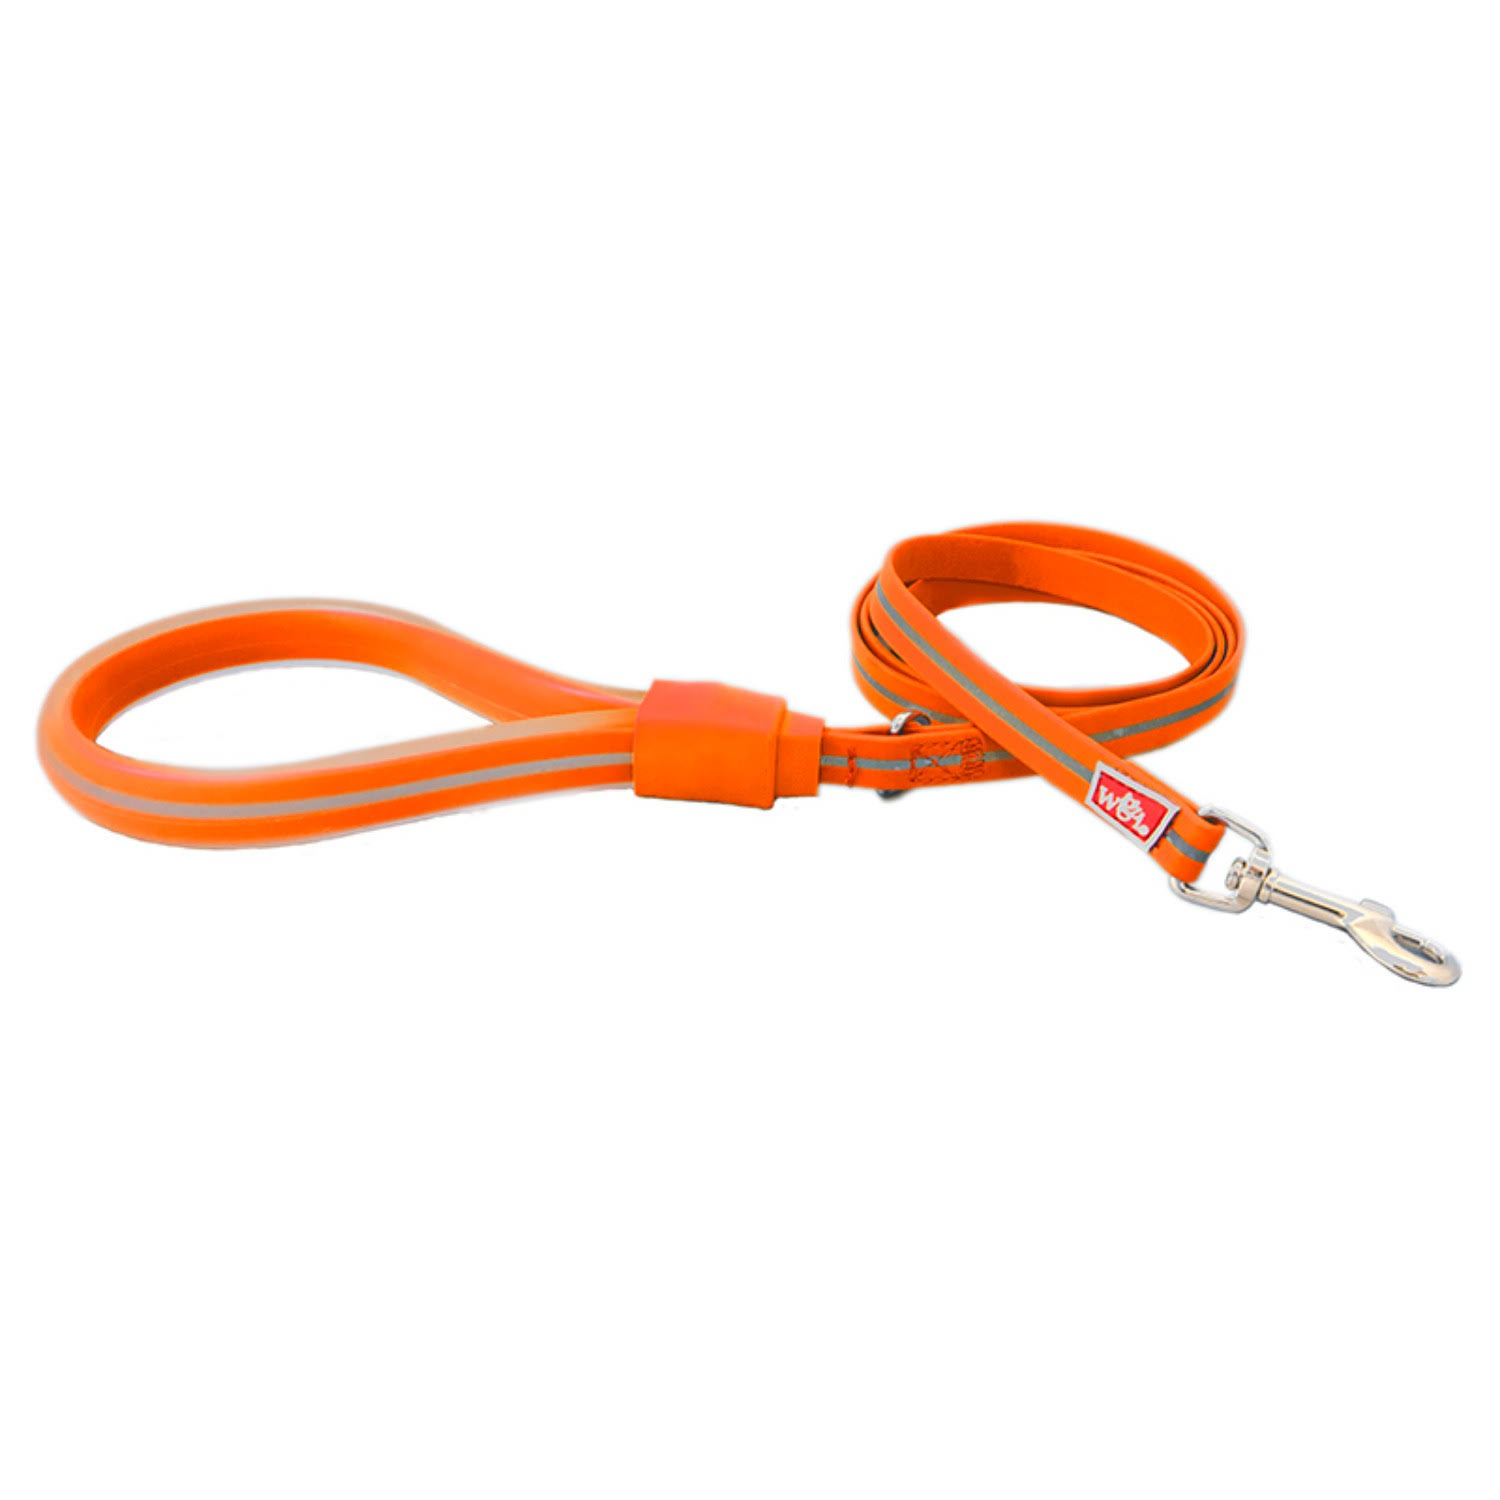 Wigzi Waterproof Gel Dog Leash - Orange